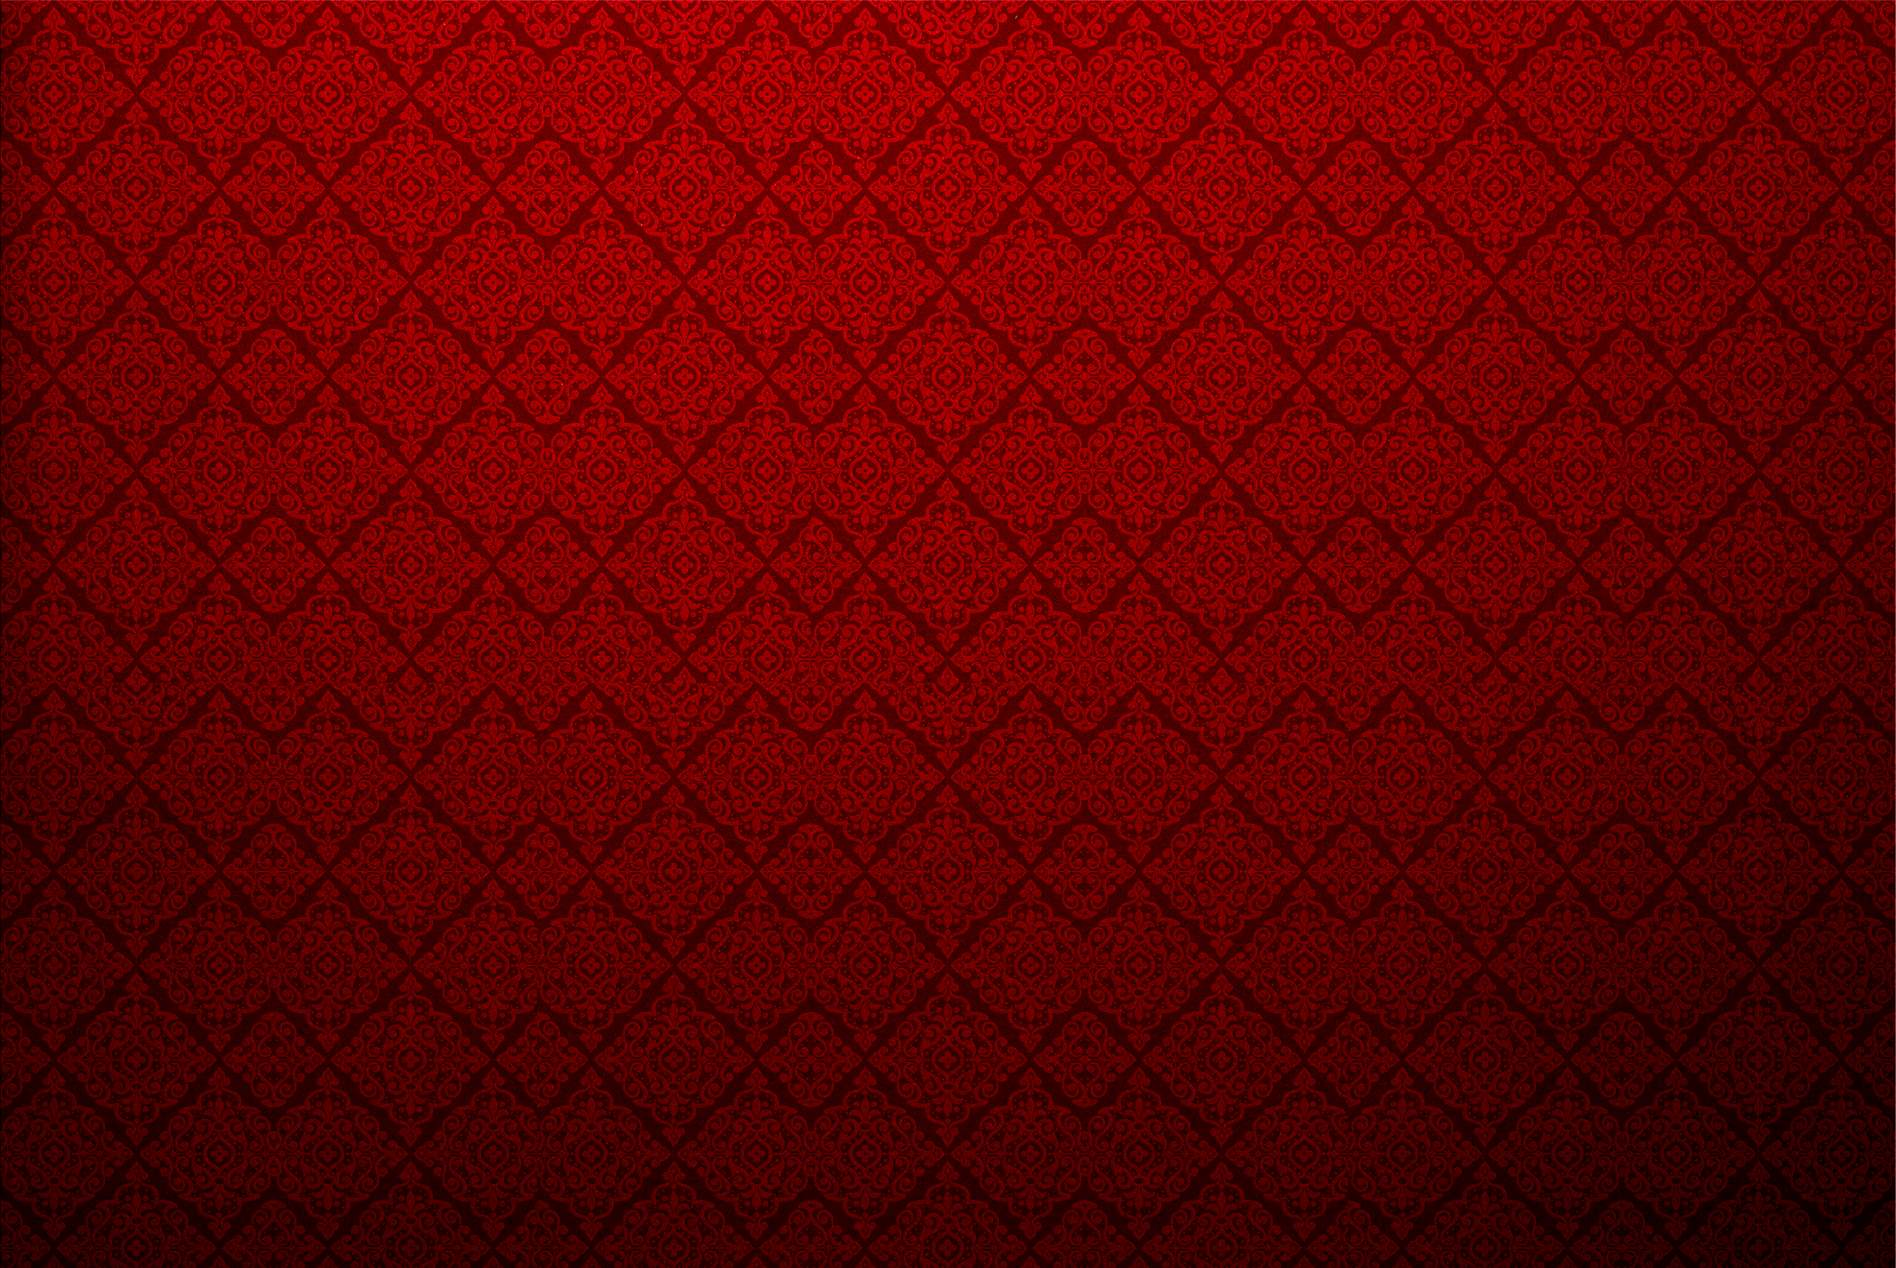 red textured background hd - photo #43